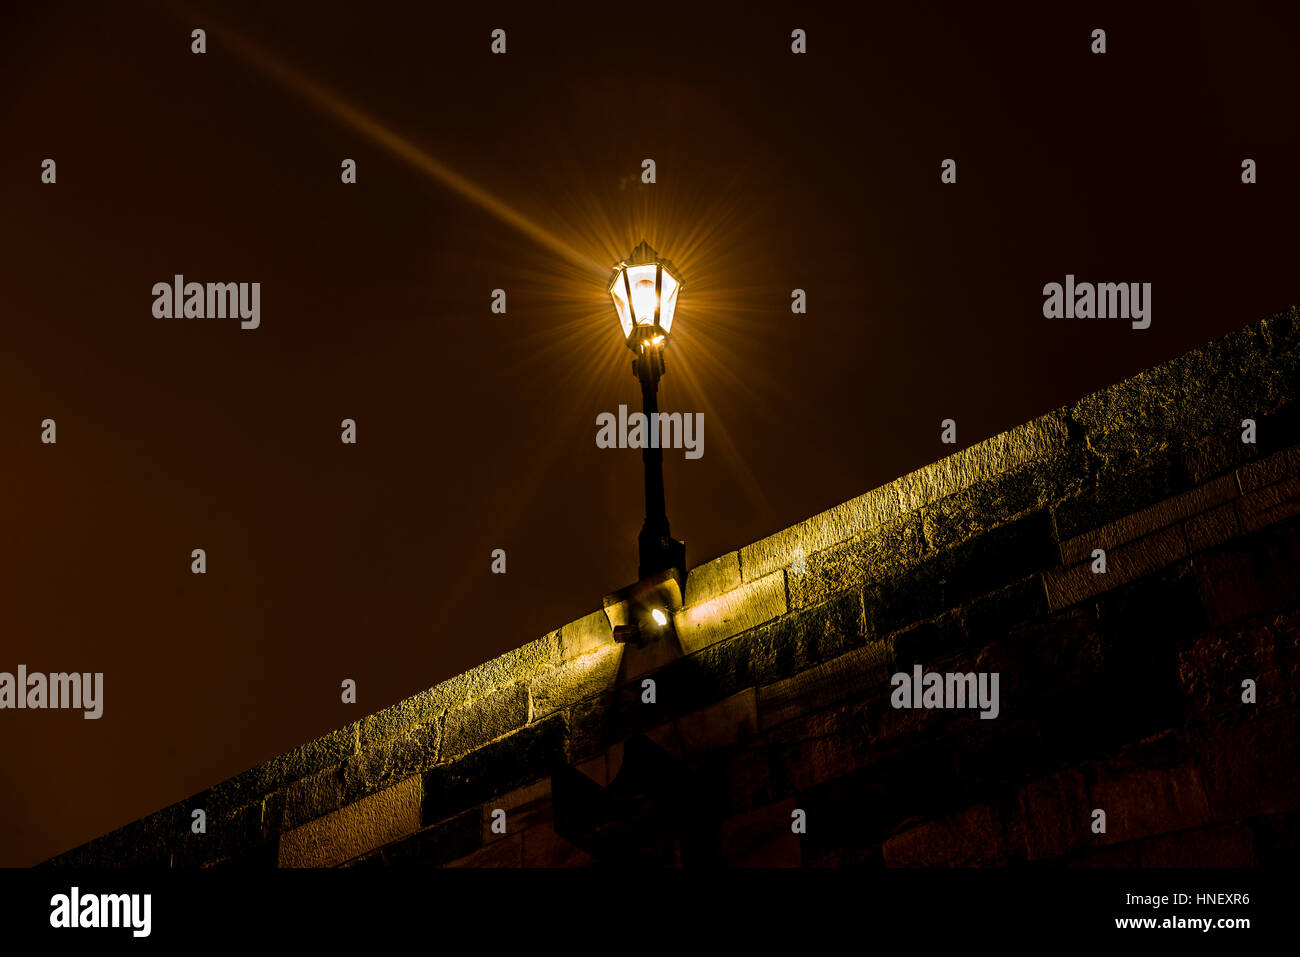 Old street lamp lit, Charles Bridge, Night Scene, historic centre, Prague, Bohemia, Czech Republic - Stock Image